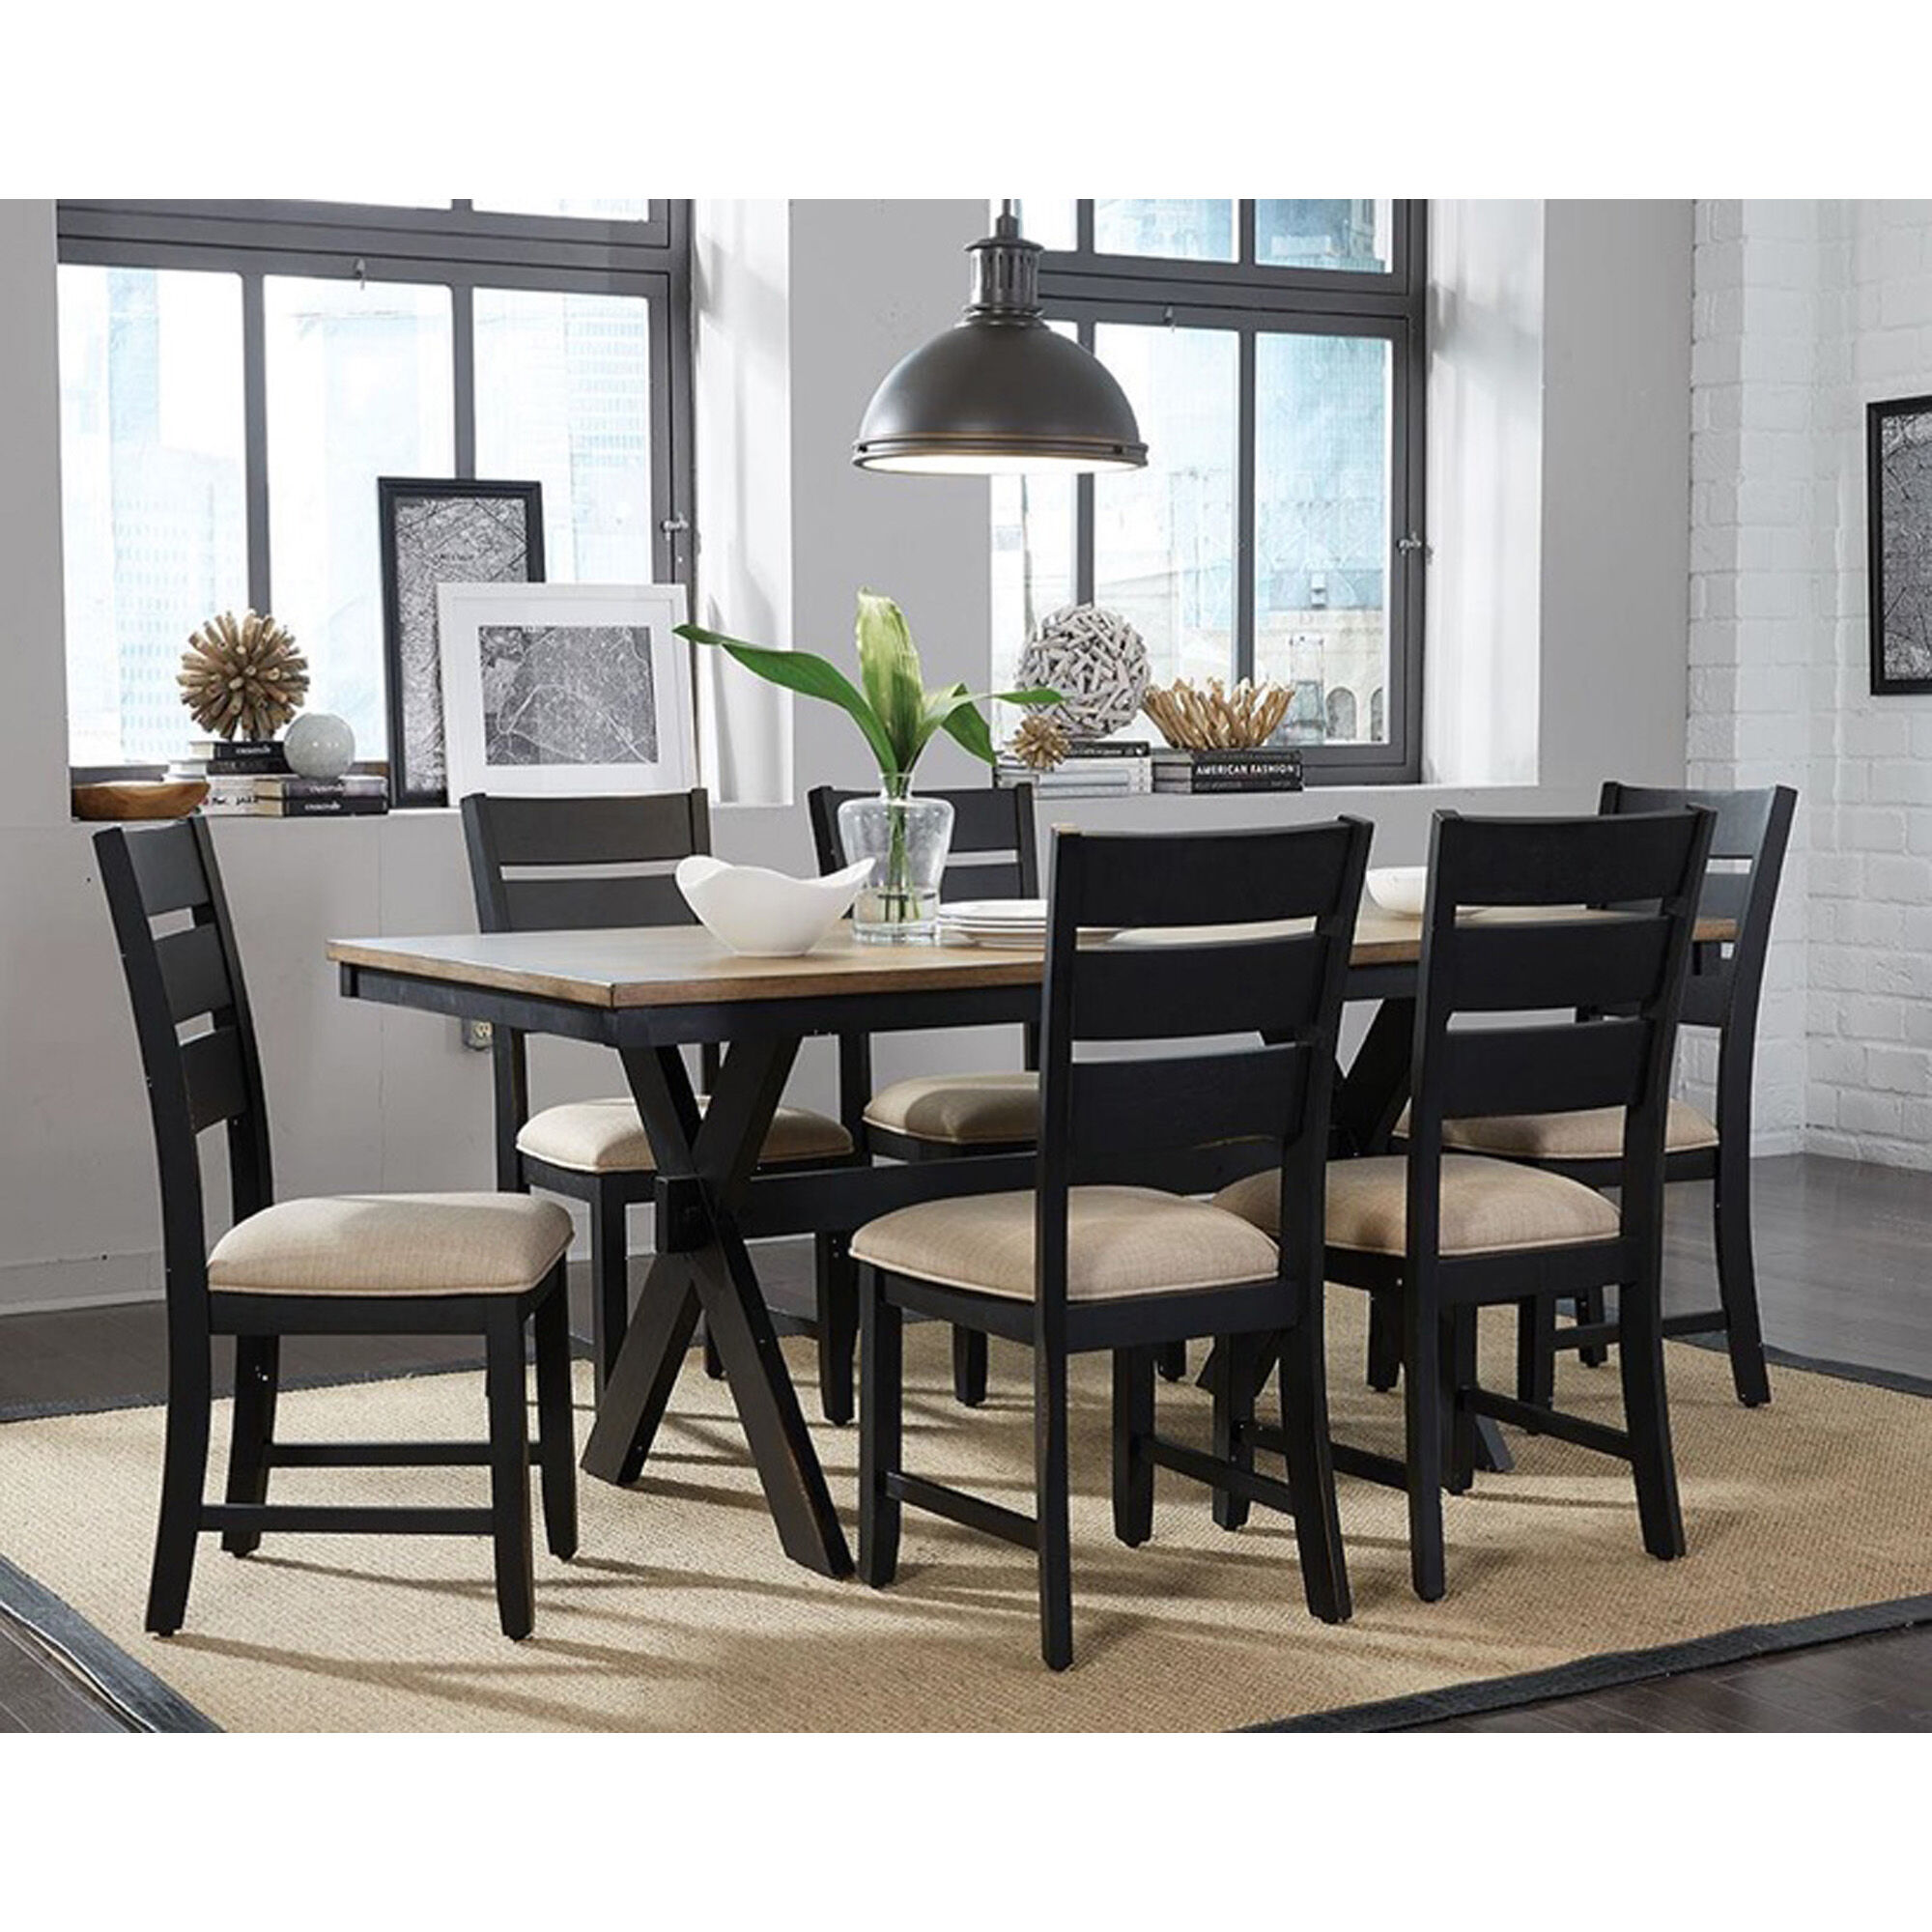 Amazing 7 Piece Braydon Dining Room Collection